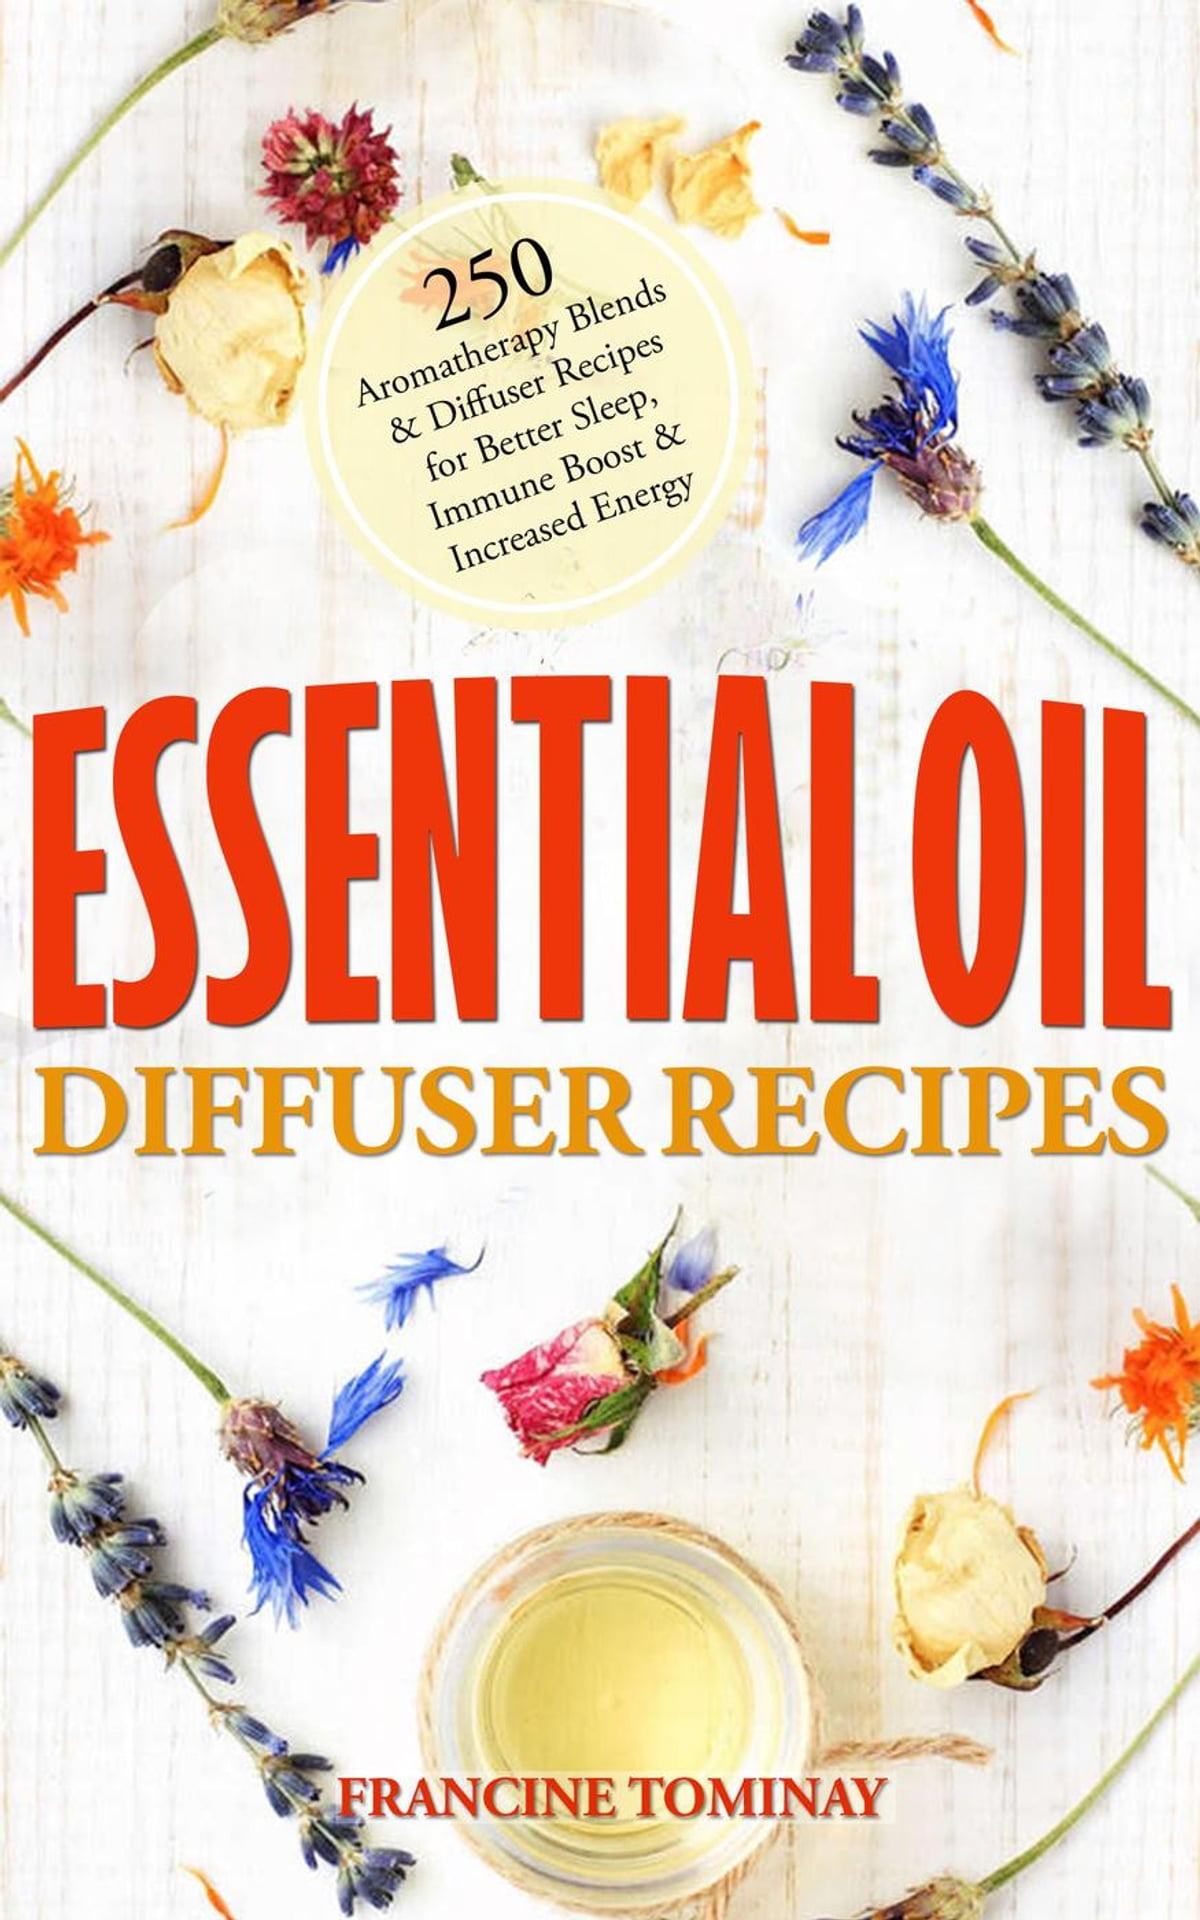 Essential Oil Diffuser Recipes 250 Aromatherapy Blends And Diffuser